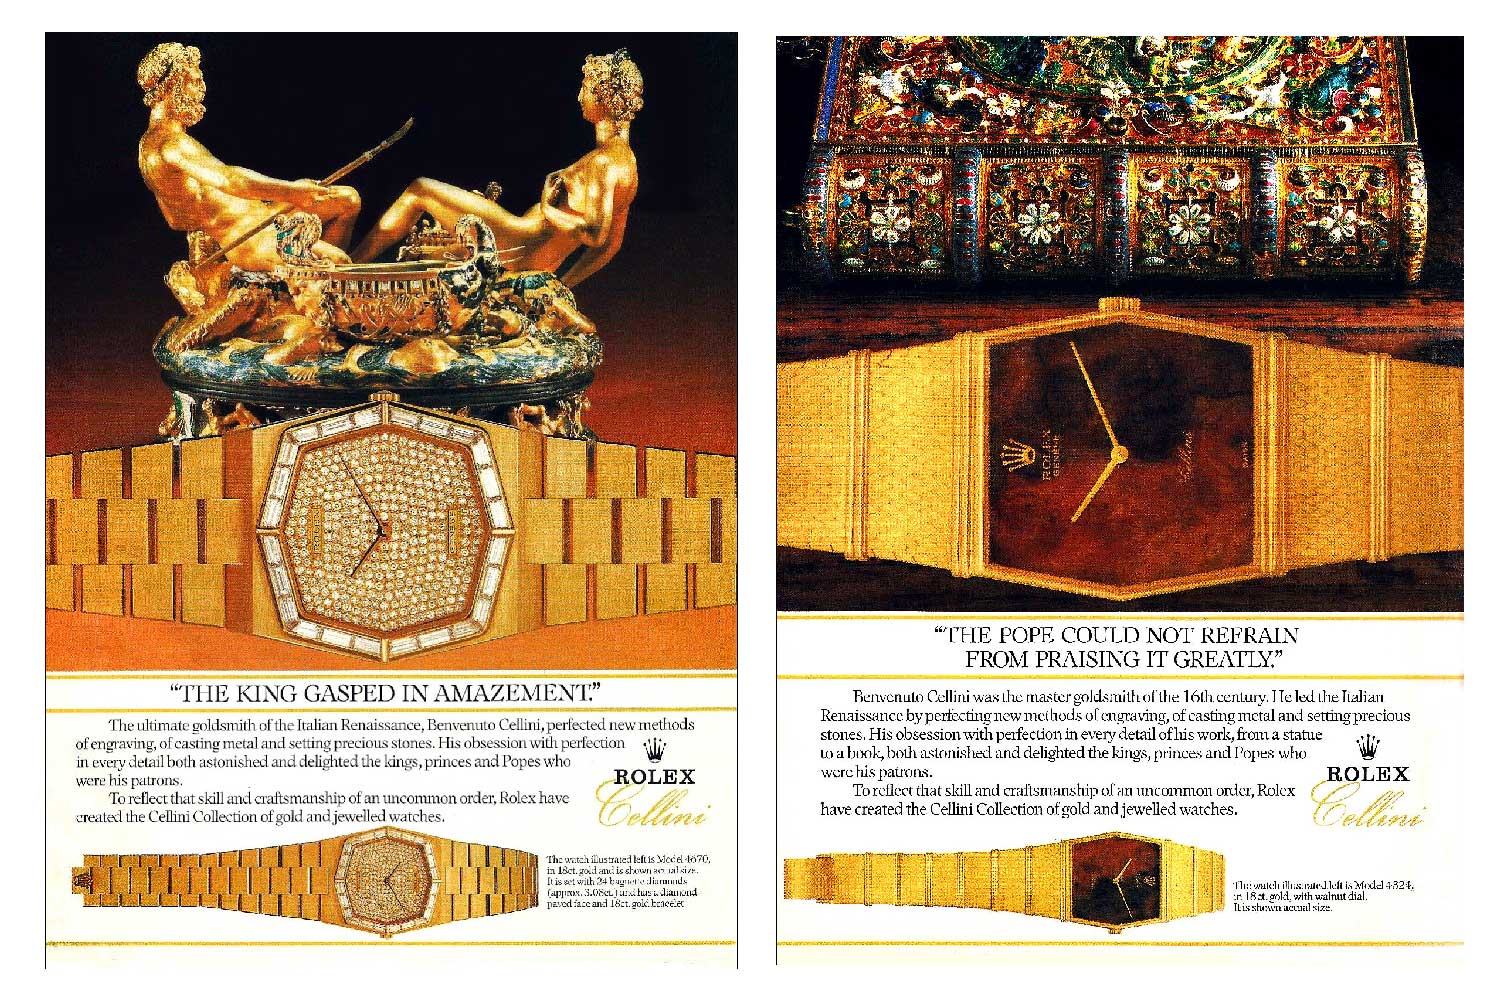 Old advertisements for Rolex Cellini (Image: Rolexmagazine.com)